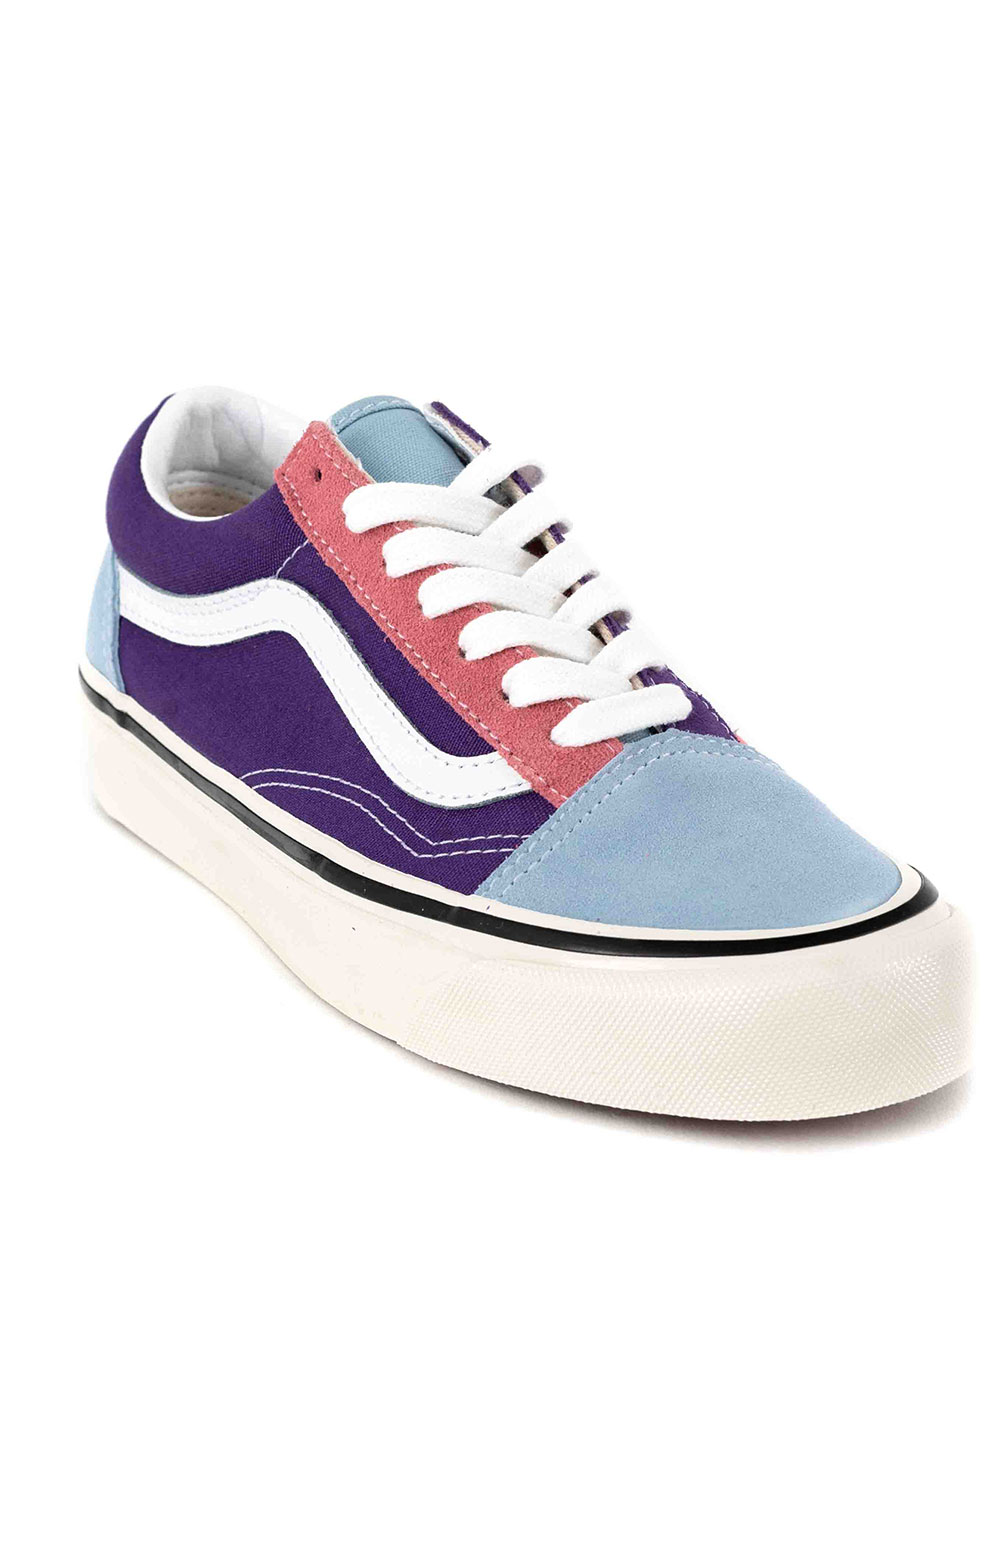 (8G2XFL) Anaheim Factory Old Skool 36 DX Shoes - OG Light Blue/OG Purple/OG Pink 3